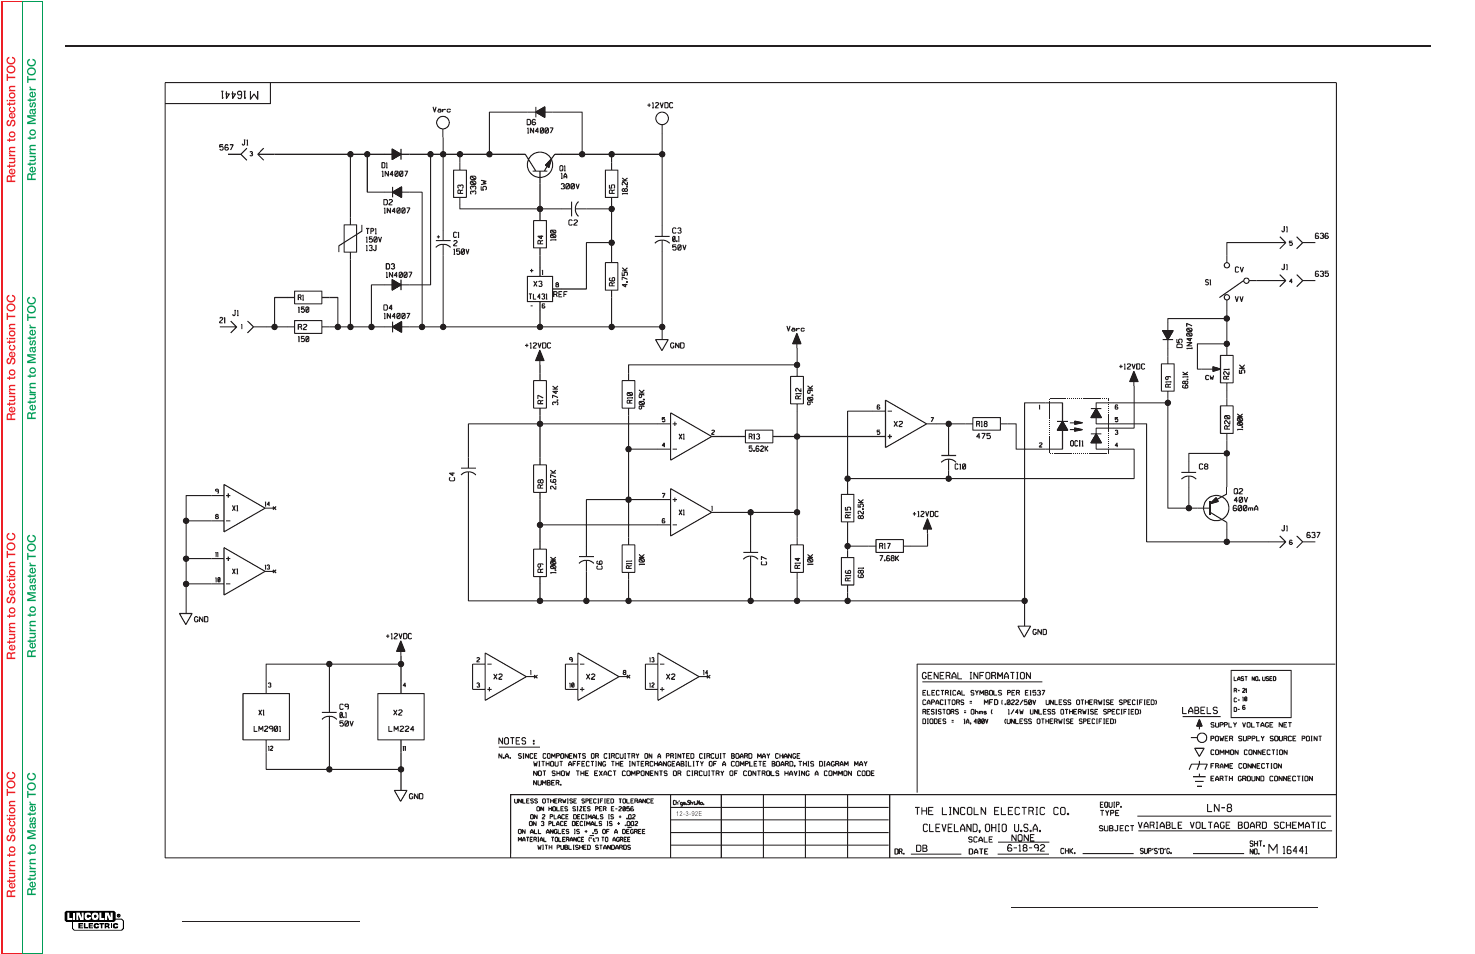 Variable voltage board (l5039) schematic, Electrical diagrams | Lincoln Electric  LN-8